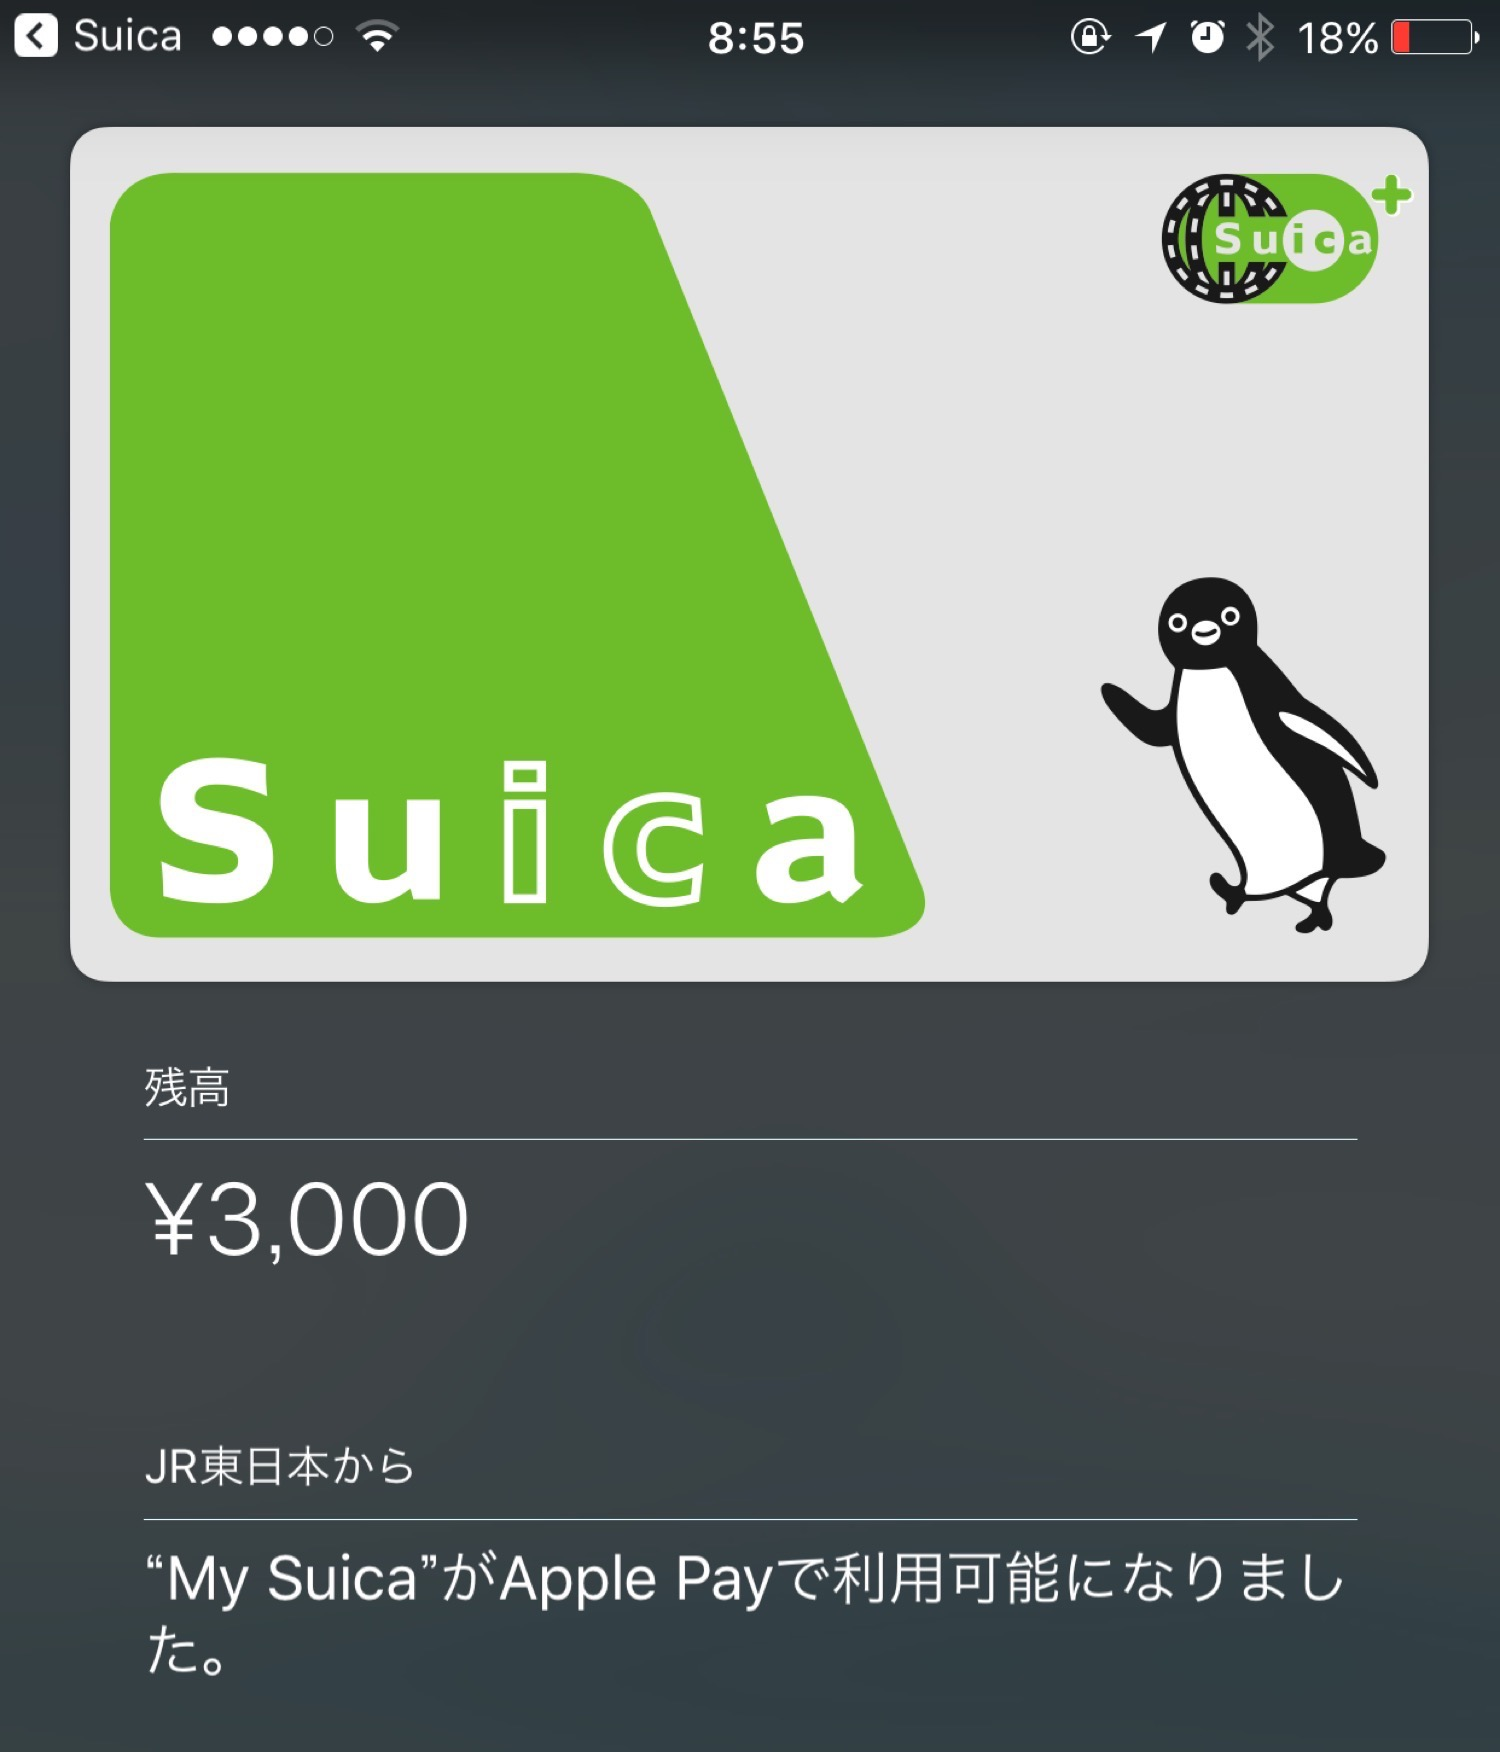 IPhone7 Suica Apple Pay 7